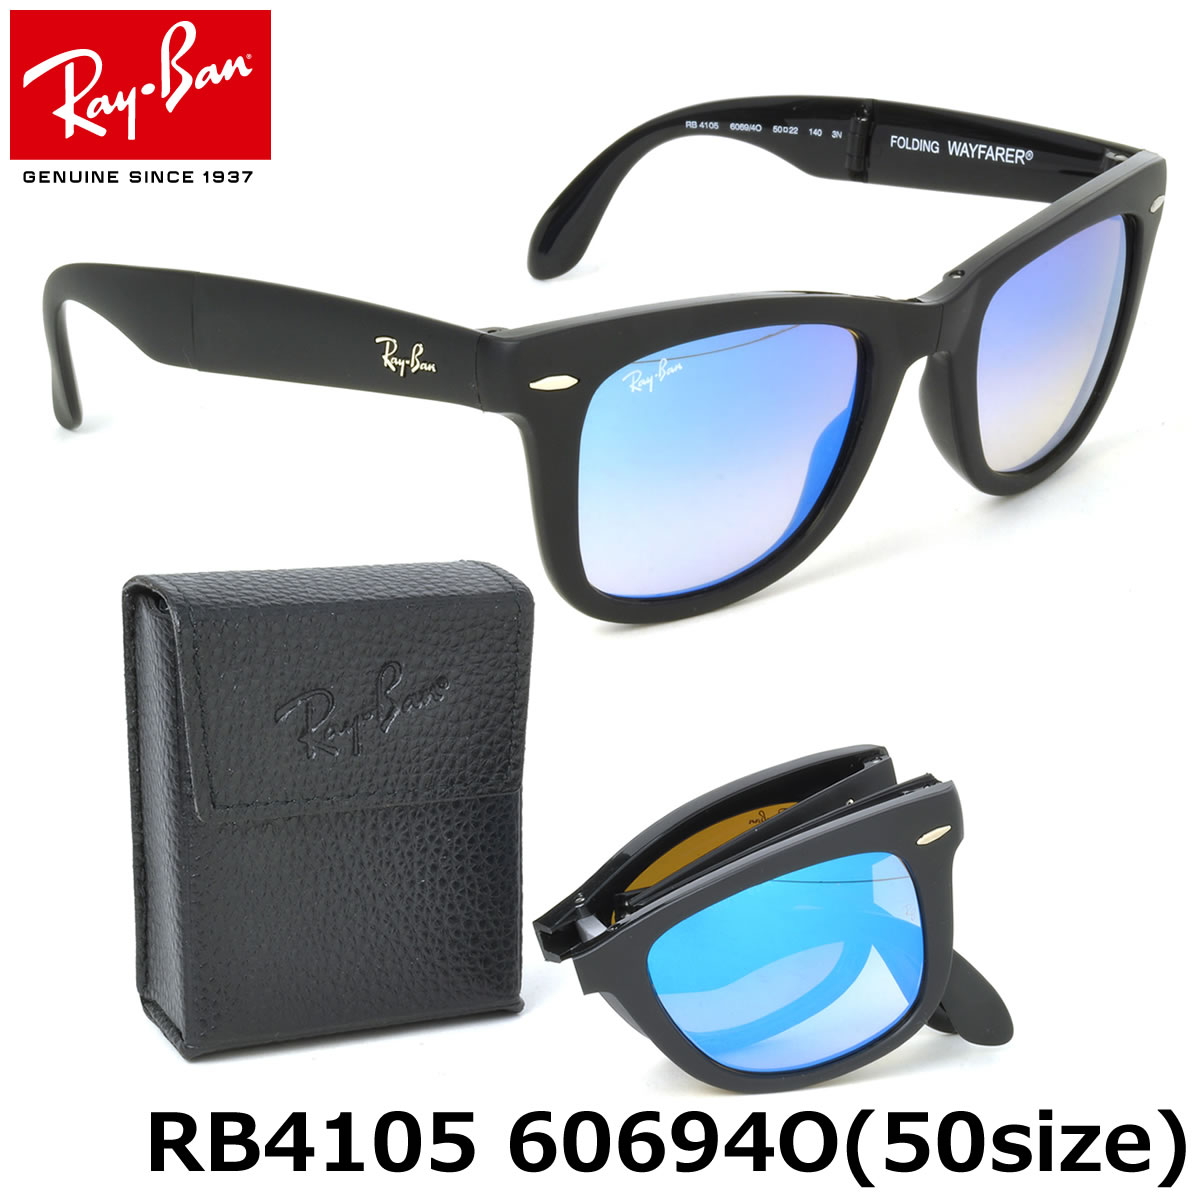 281afb3c7ad It is a foldable folding type of one of the most popular models way Farrar  now. In pronominal existence way Farrar WAYFARER of Ray-Ban